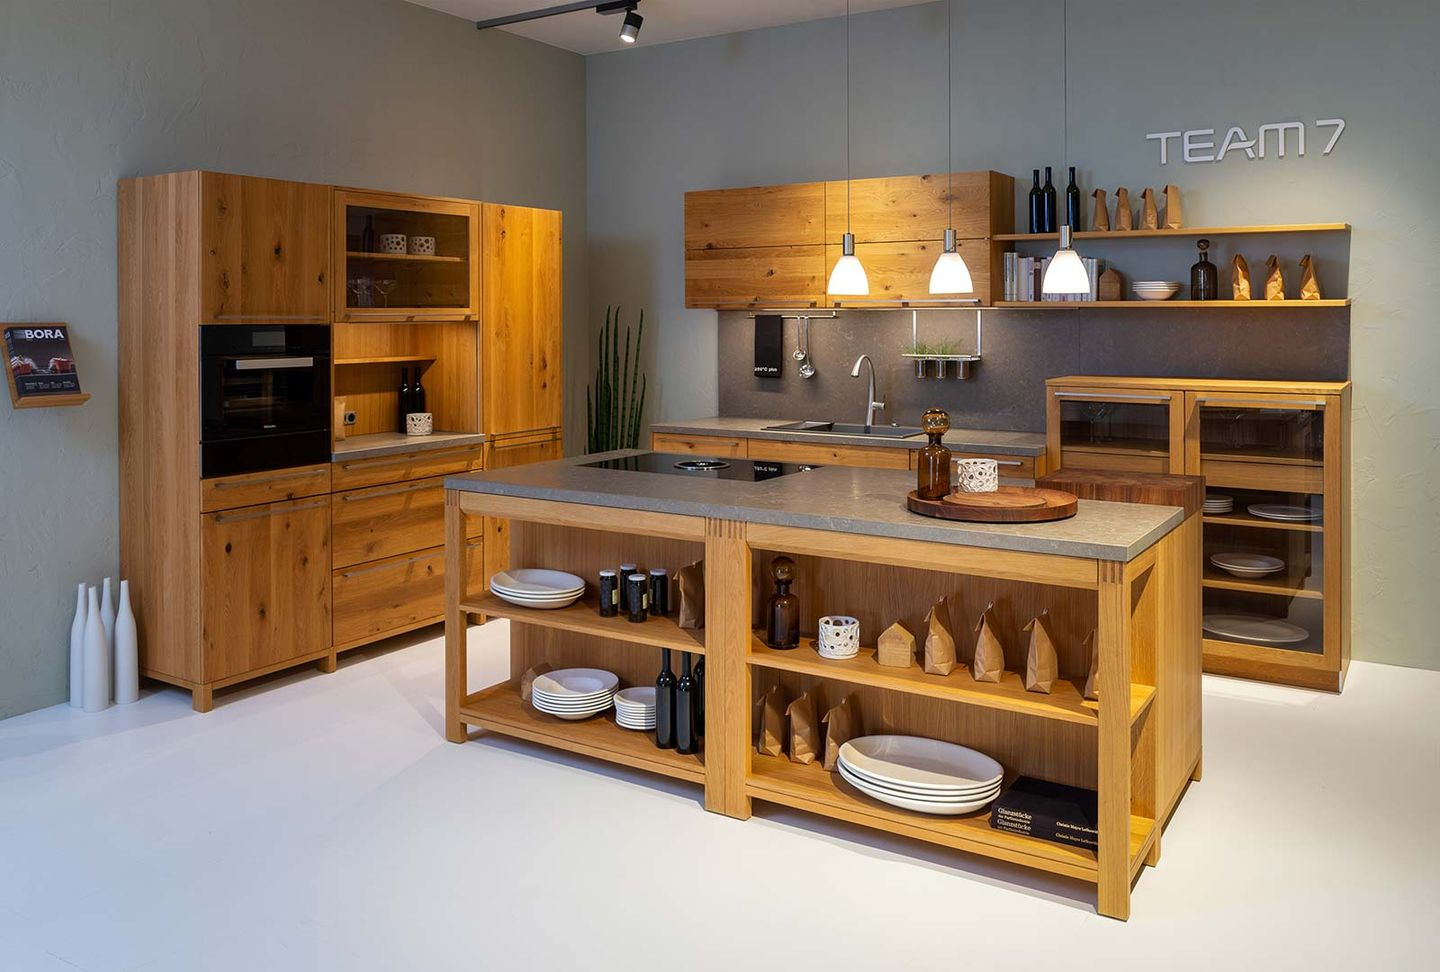 loft solid wood kitchen in wild oak at TEAM 7 store Hamburg Altona